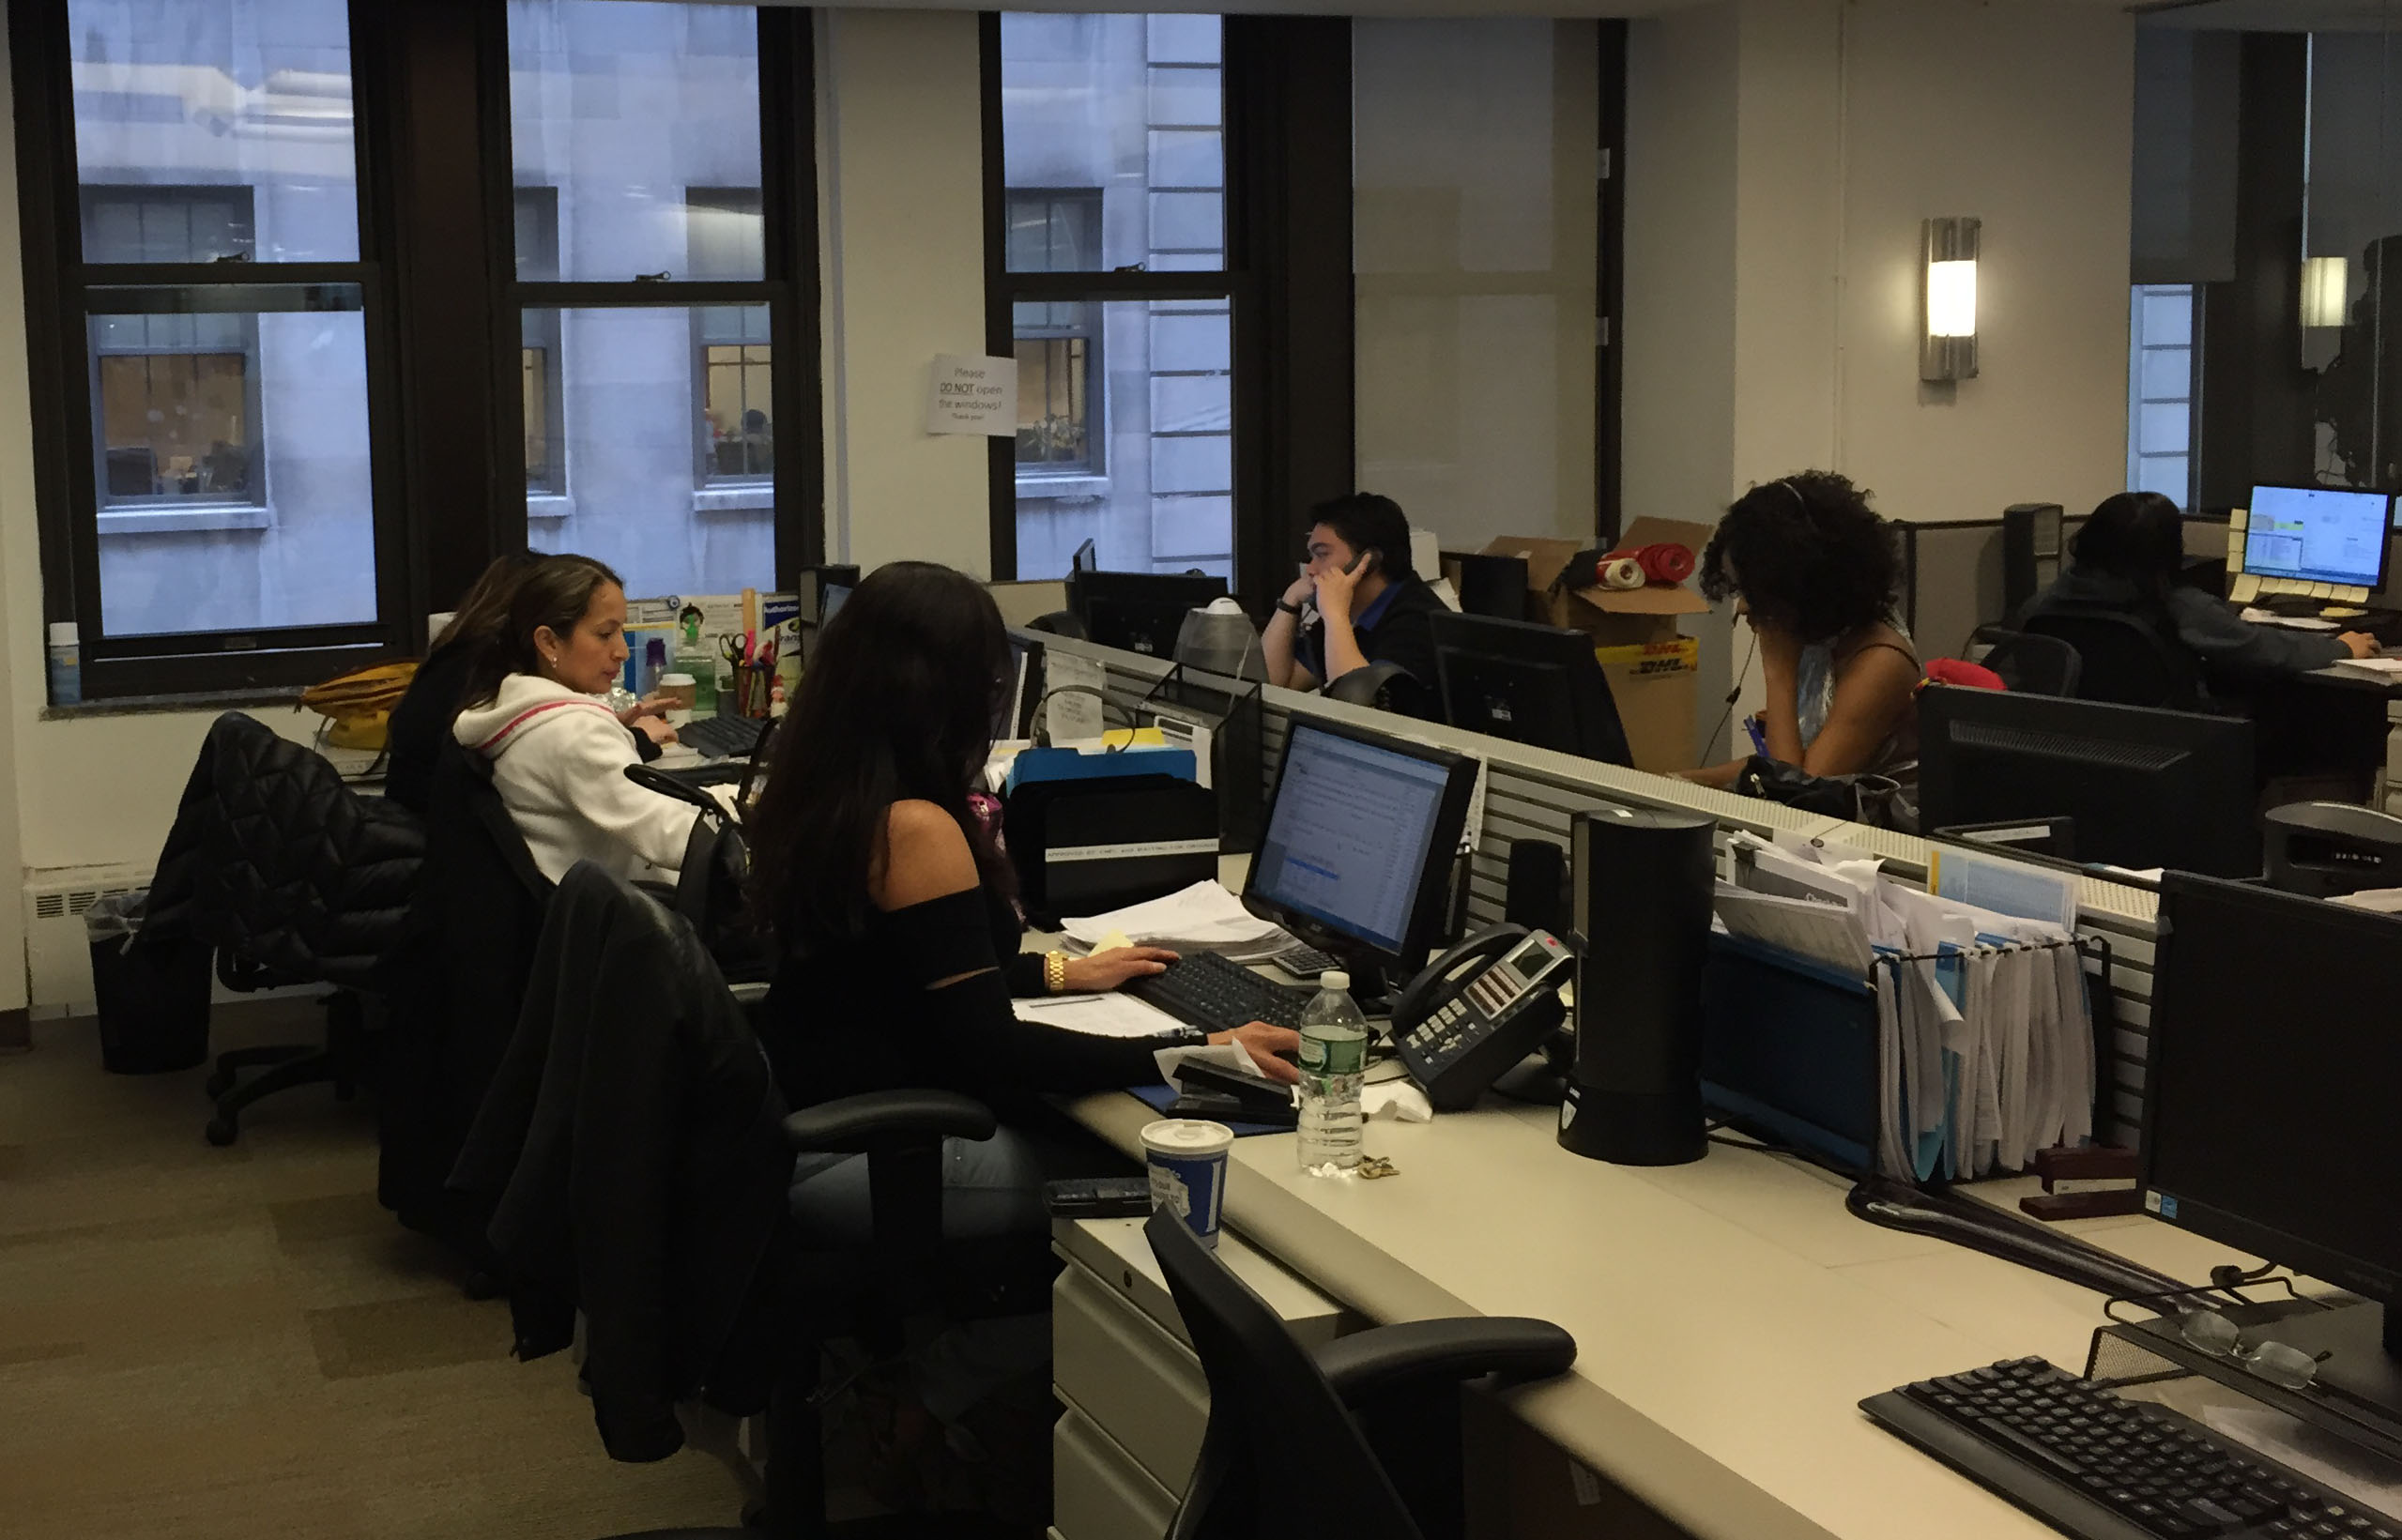 Transfast working environment: money transfer Global HQ on 44 Wall Street, New York